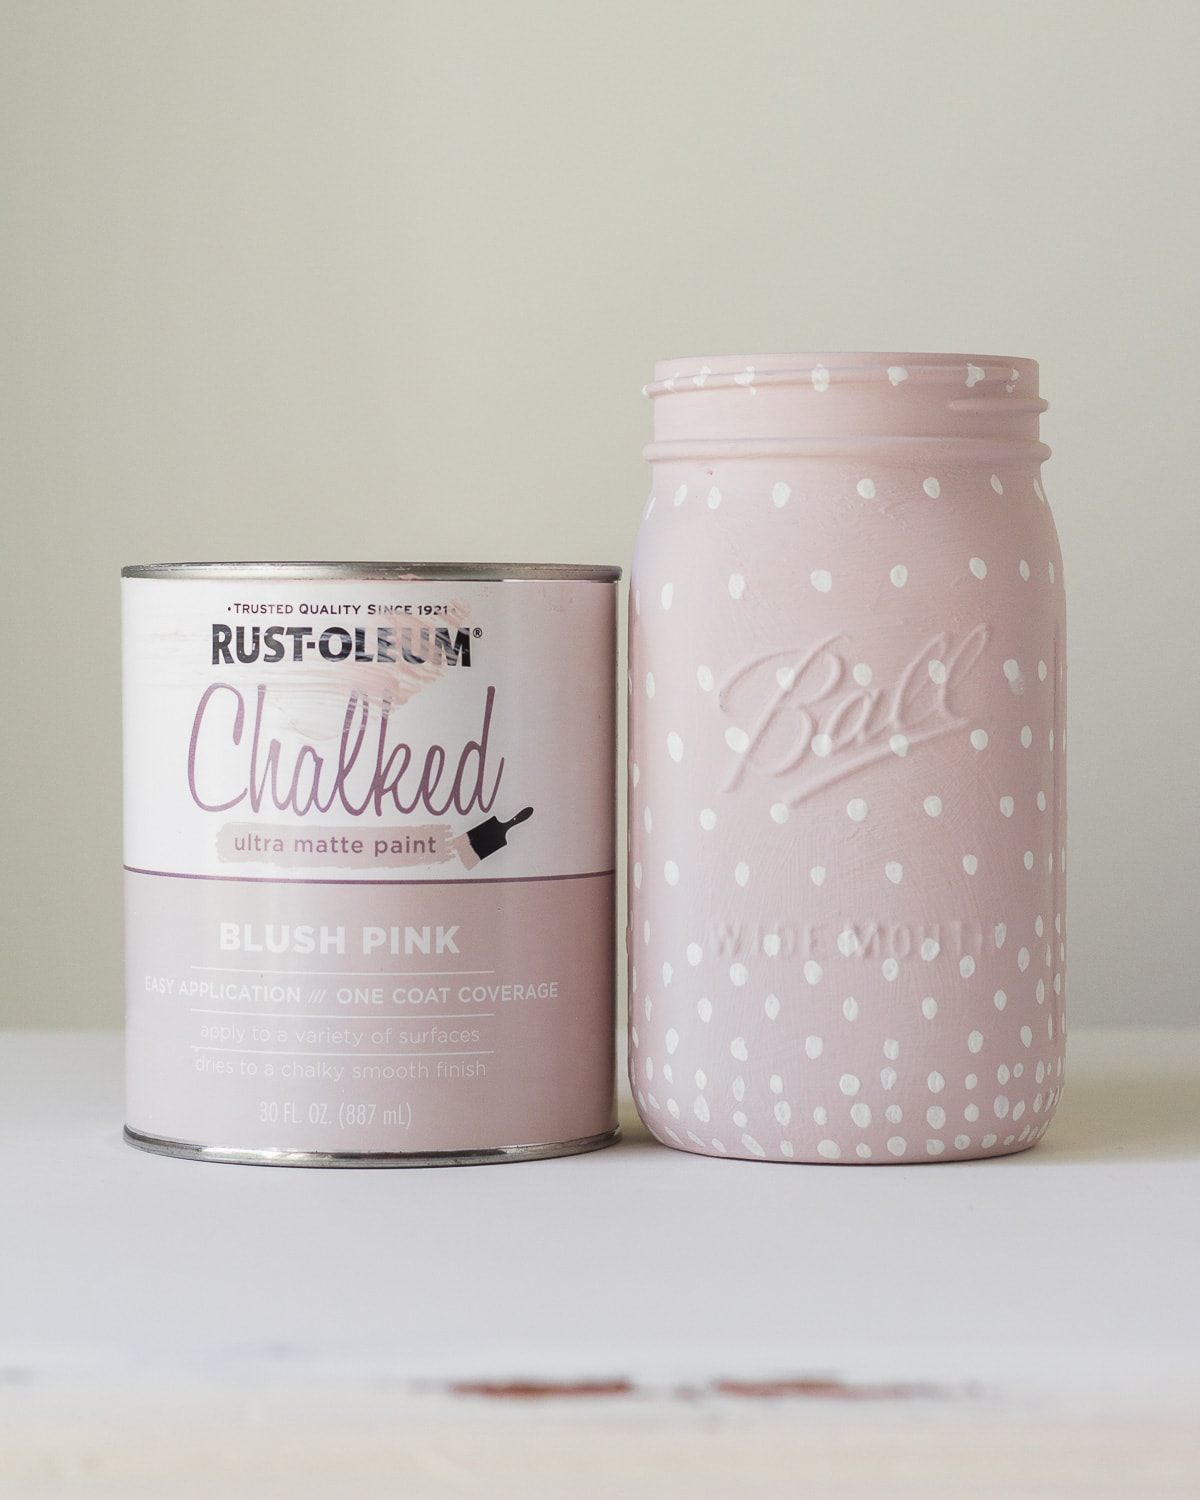 A can of chalk paint and a glass jar painted pink with white polka dots.